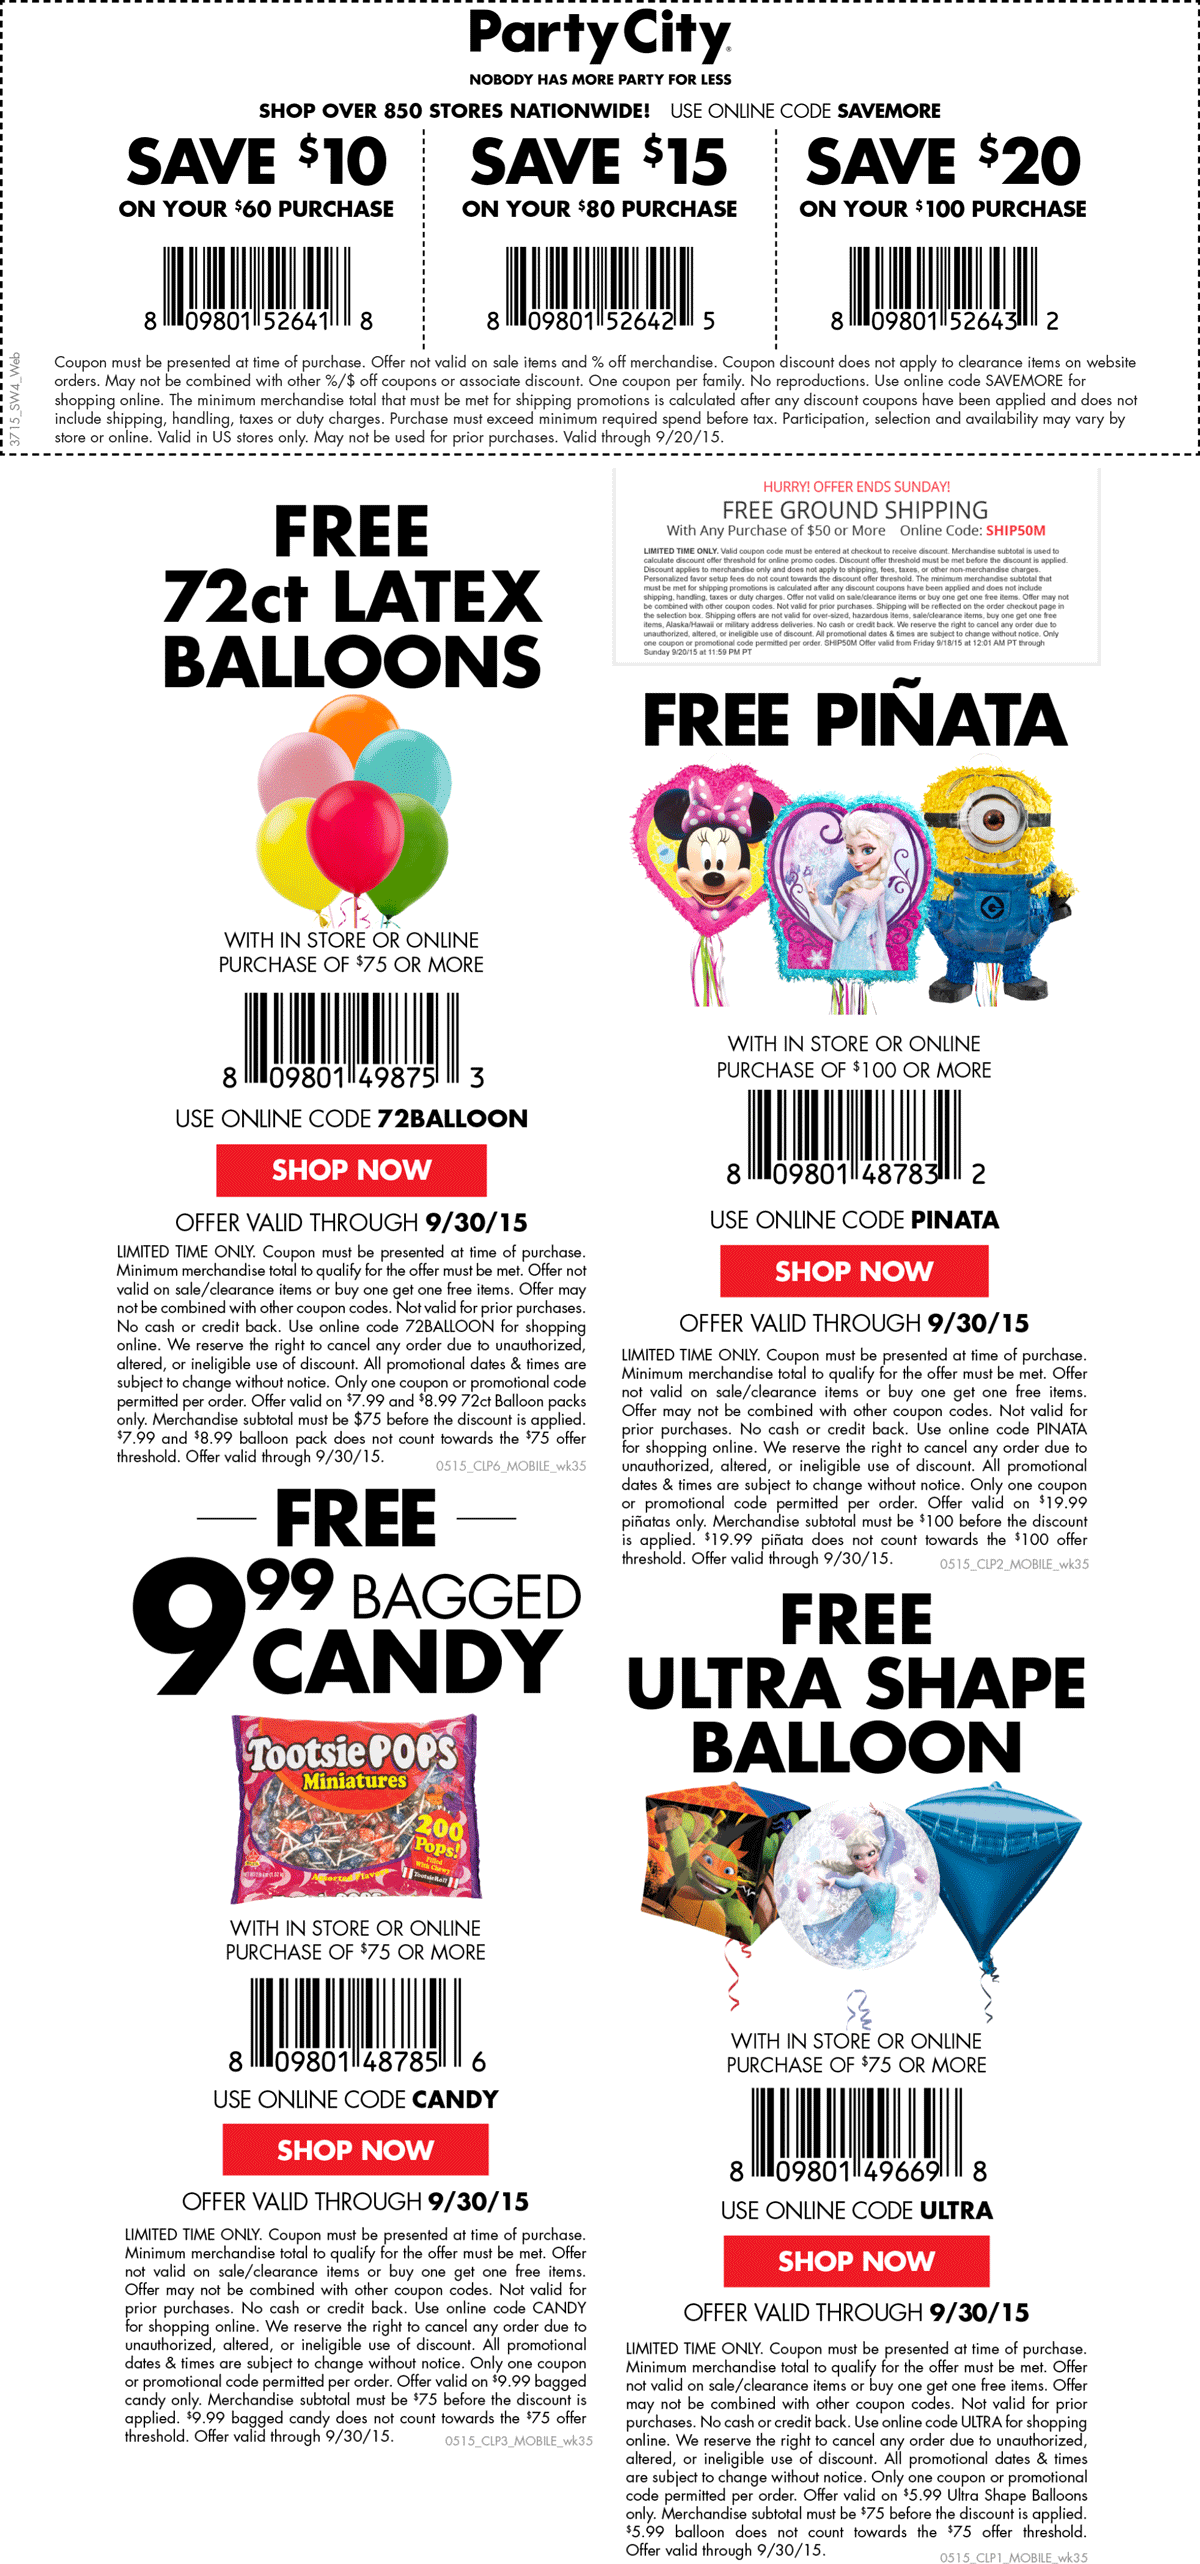 Party City Deal! Birthday coupons, Coupons by mail